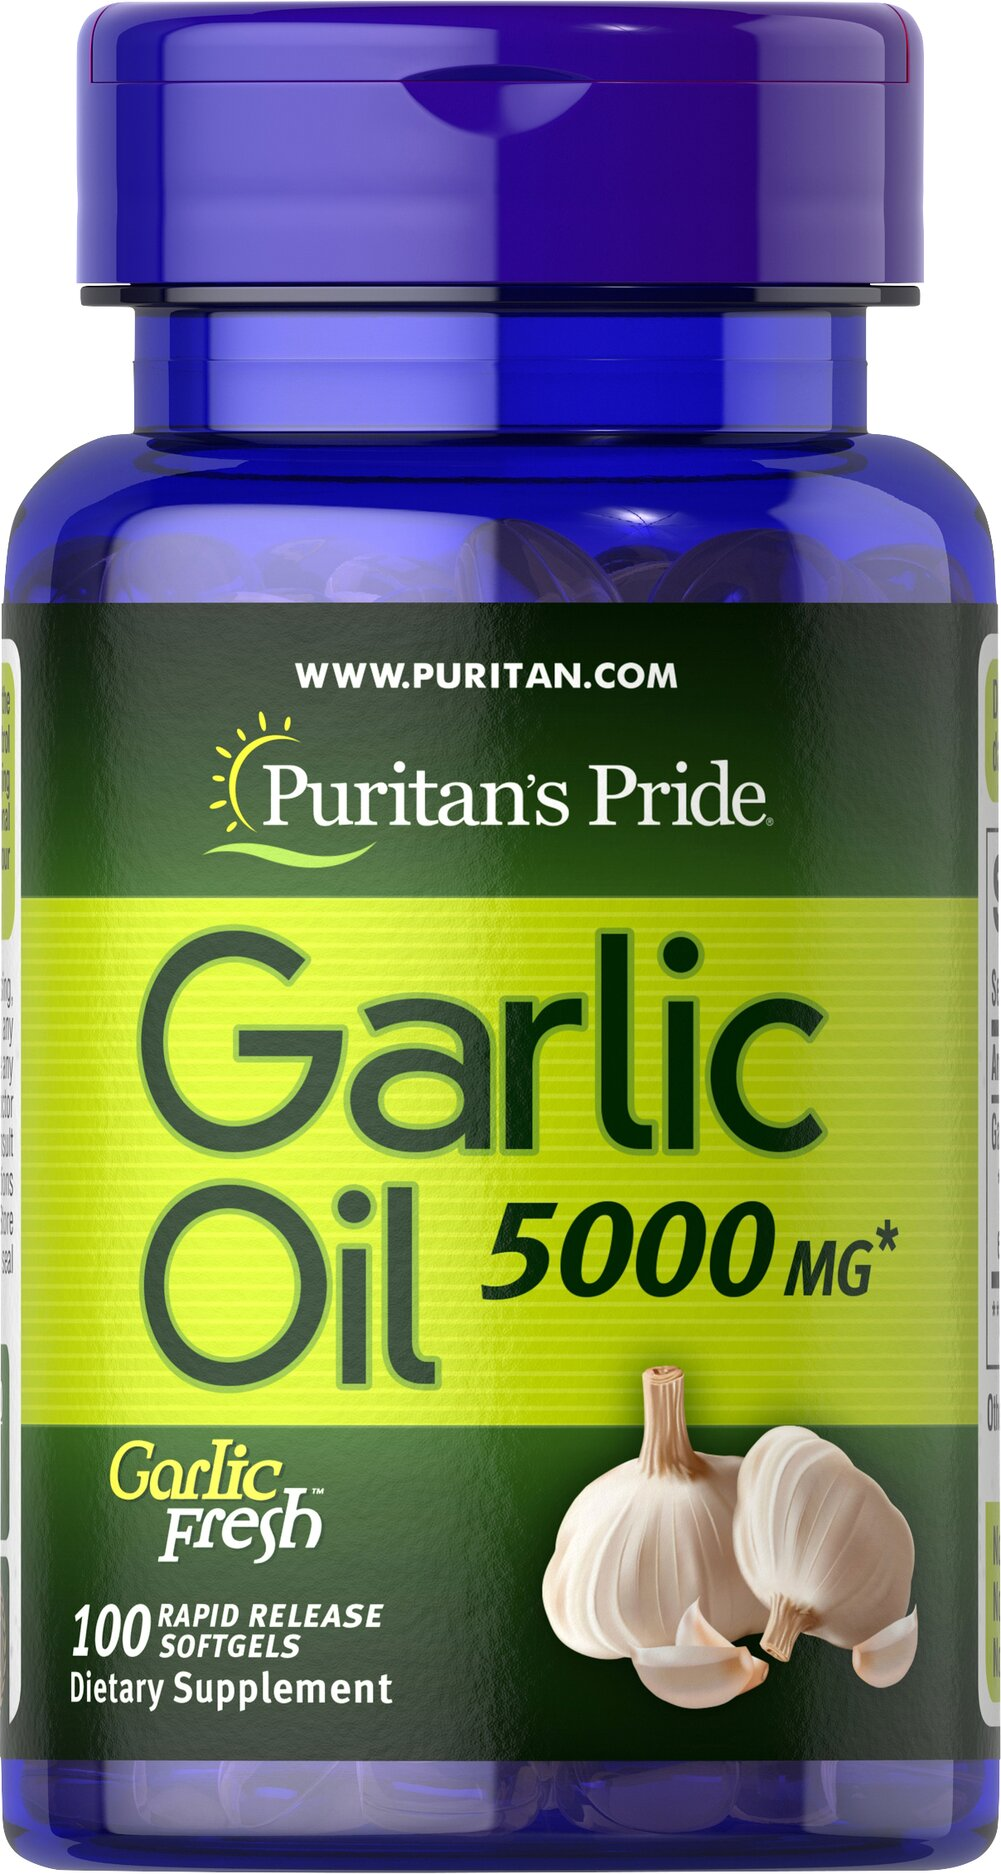 Garlic Oil 5000 mg